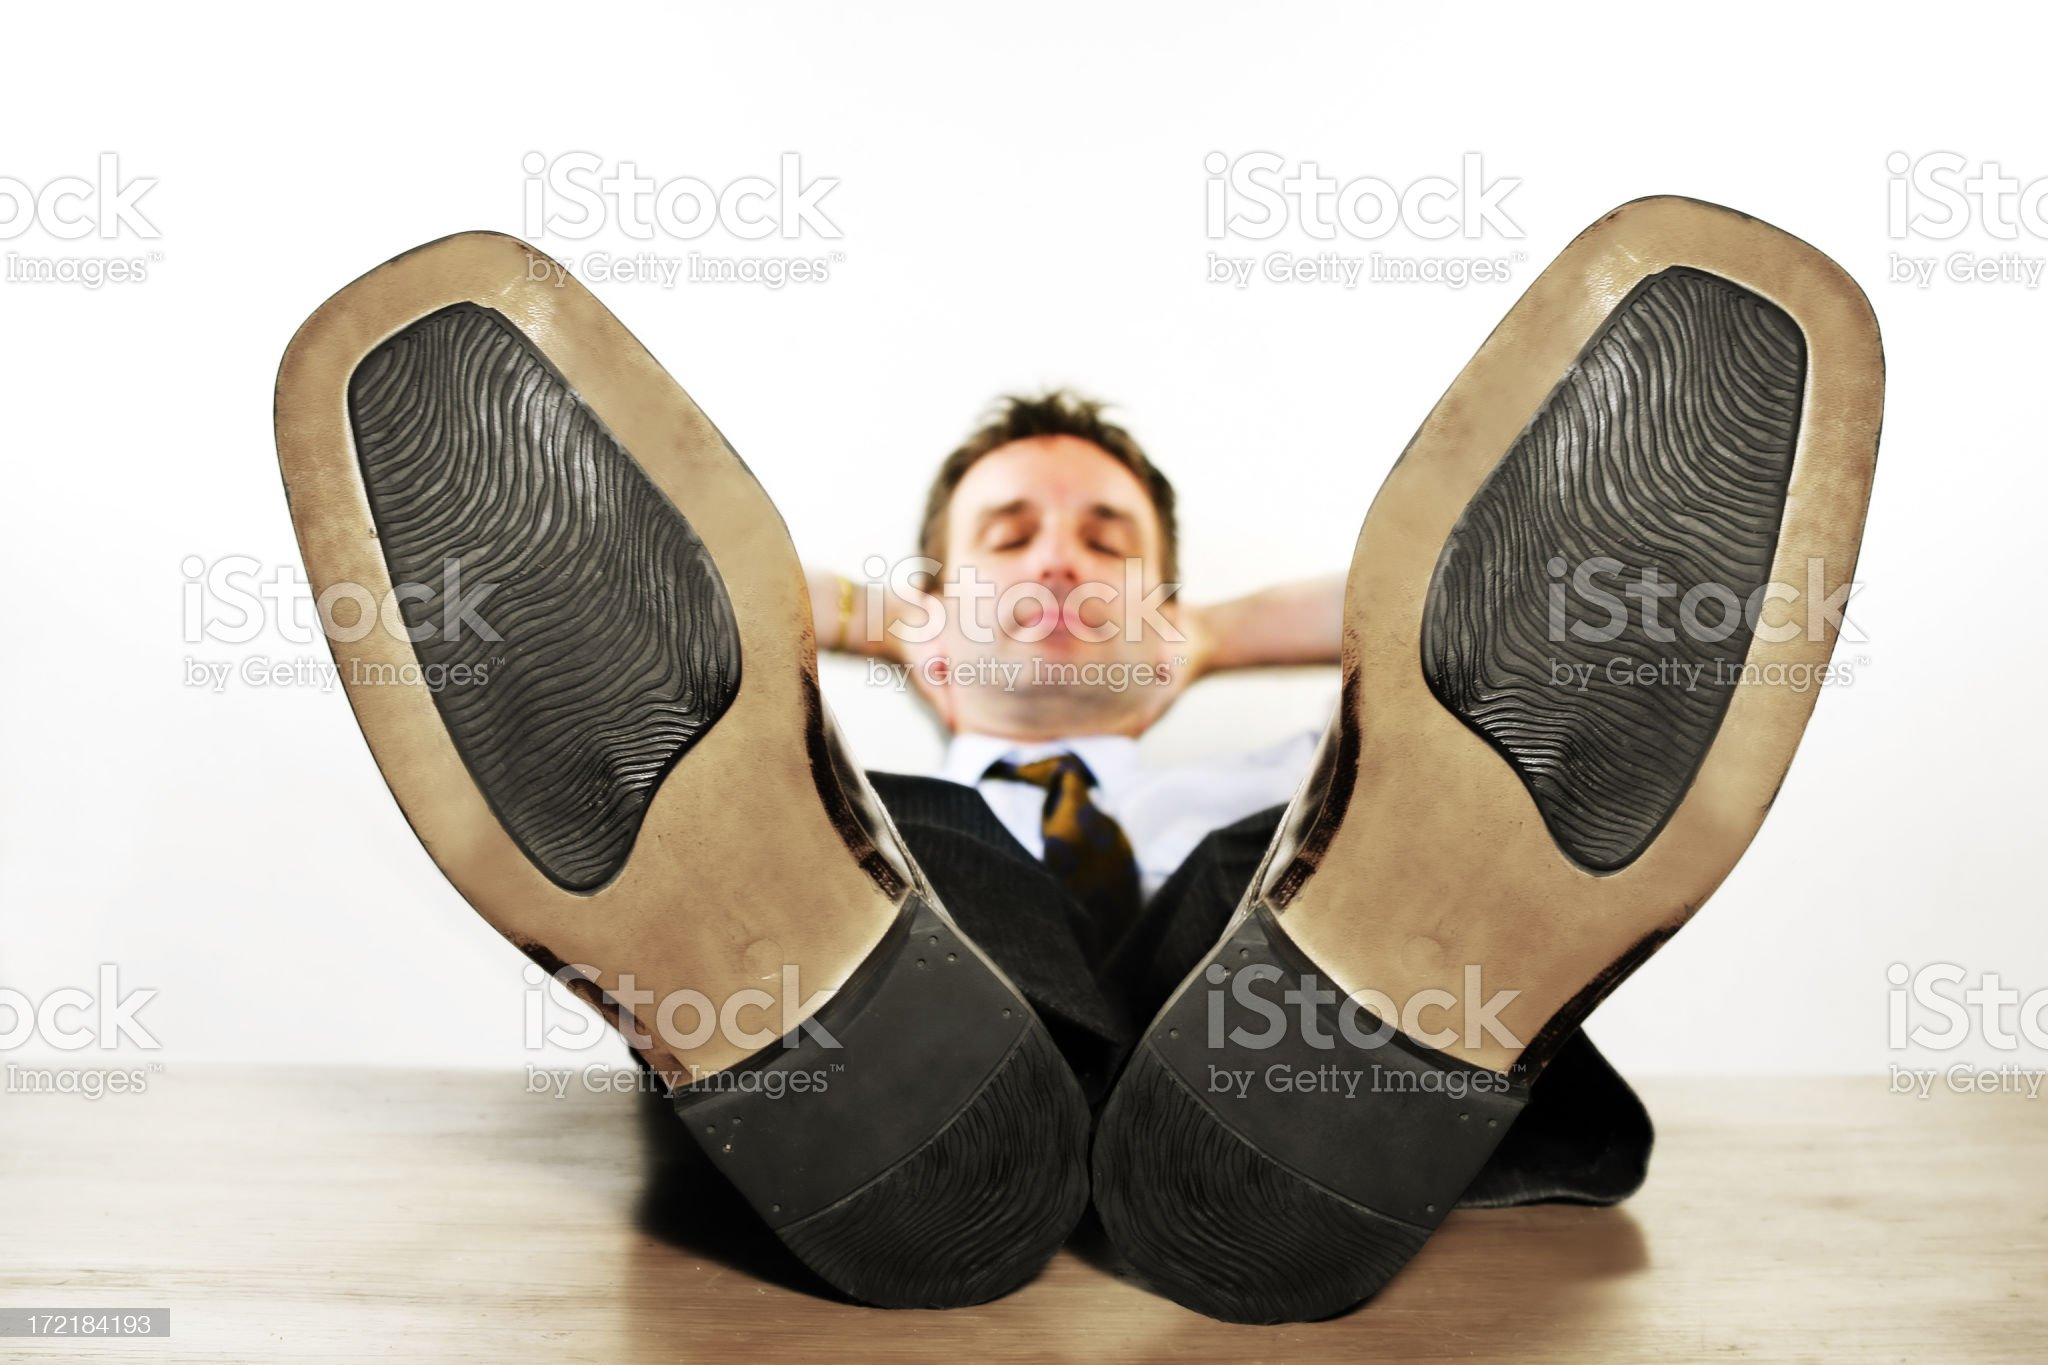 Lazy worker royalty-free stock photo